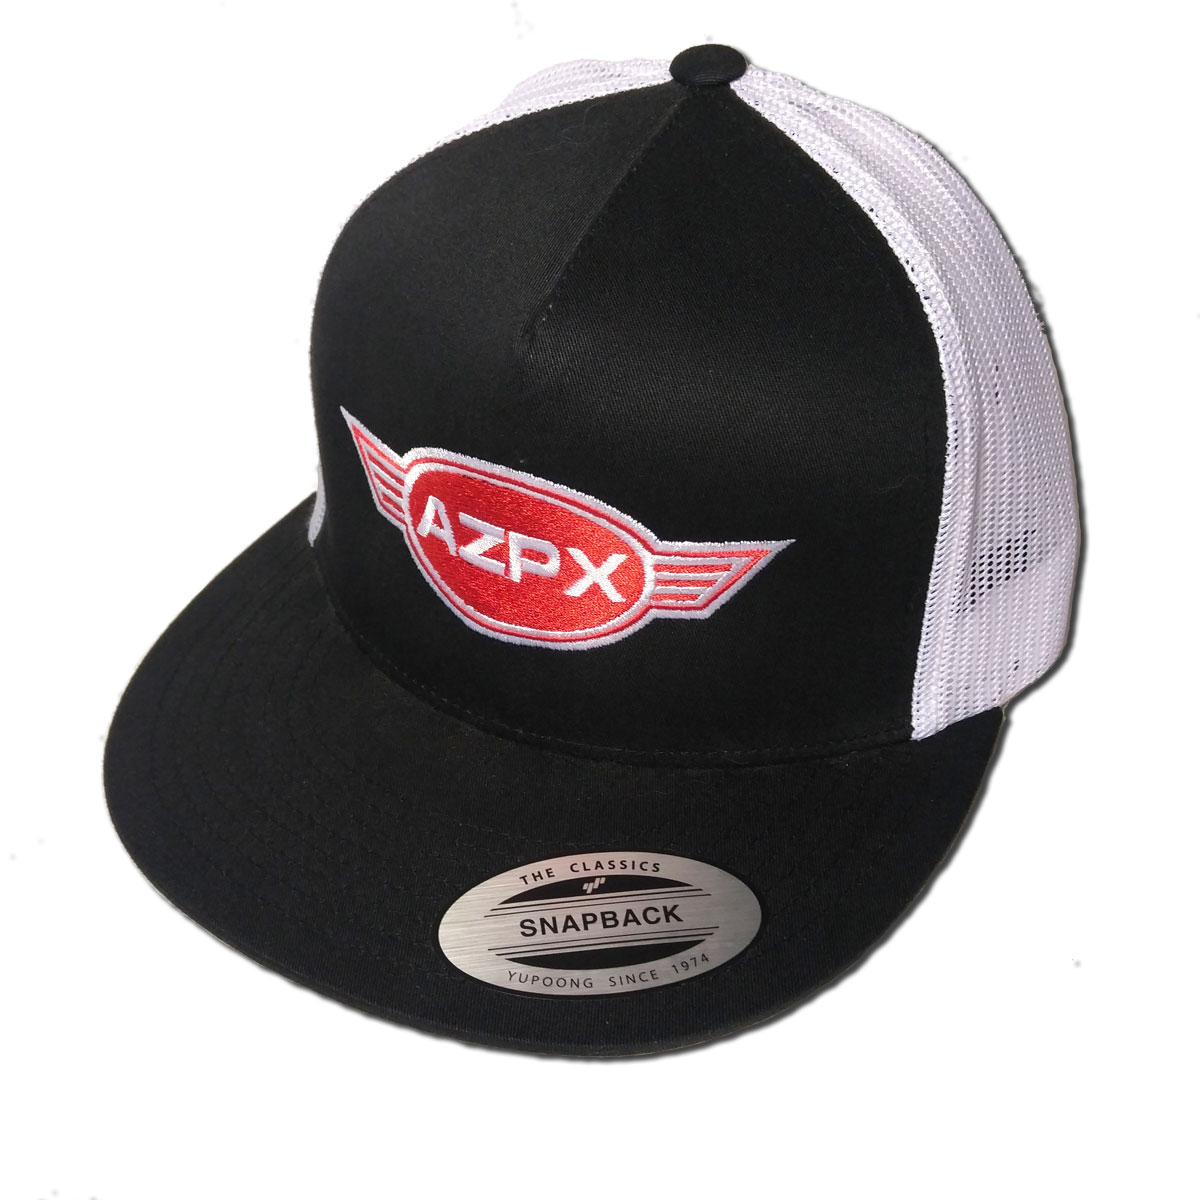 AZPX Embroidered Mesh Trucker Hat Black/White